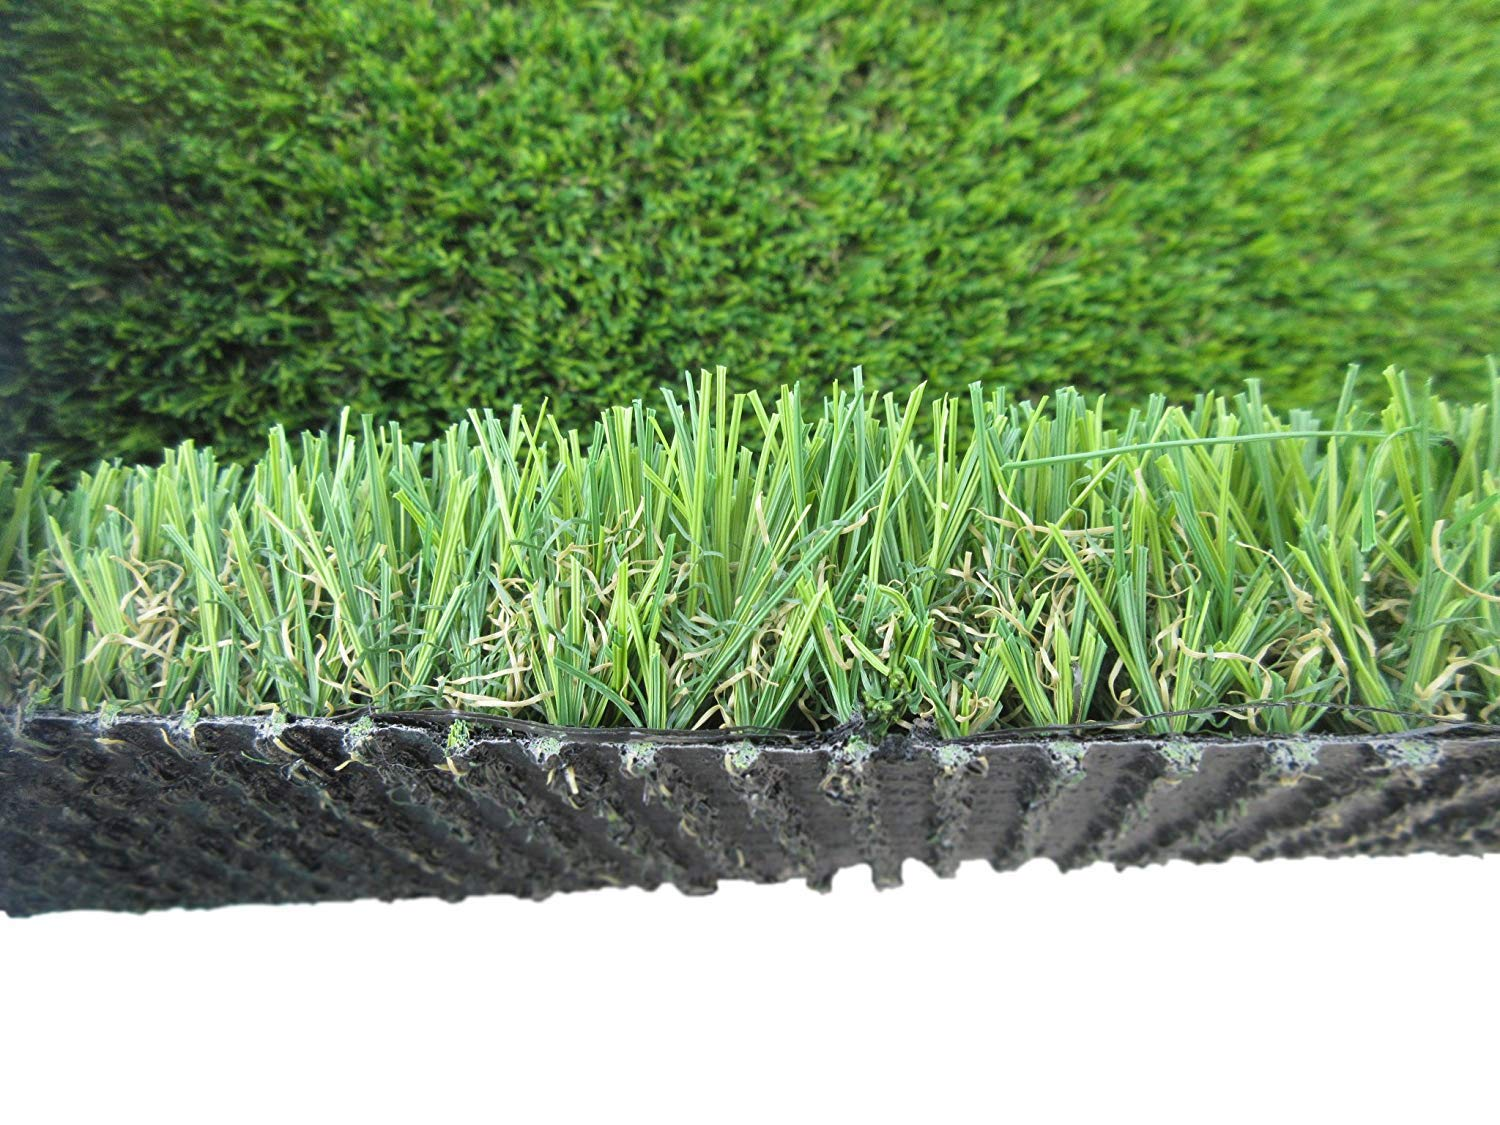 PZG Commerical Artificial Grass Patch w/ Drainage Holes & Rubber Backing   Heavy & Soft Turf   Lead-Free Fake Grass for Dogs or Outdoor Decor   Total Weight - 83 oz & Face Weight 55 oz   Size: 6' x 4'